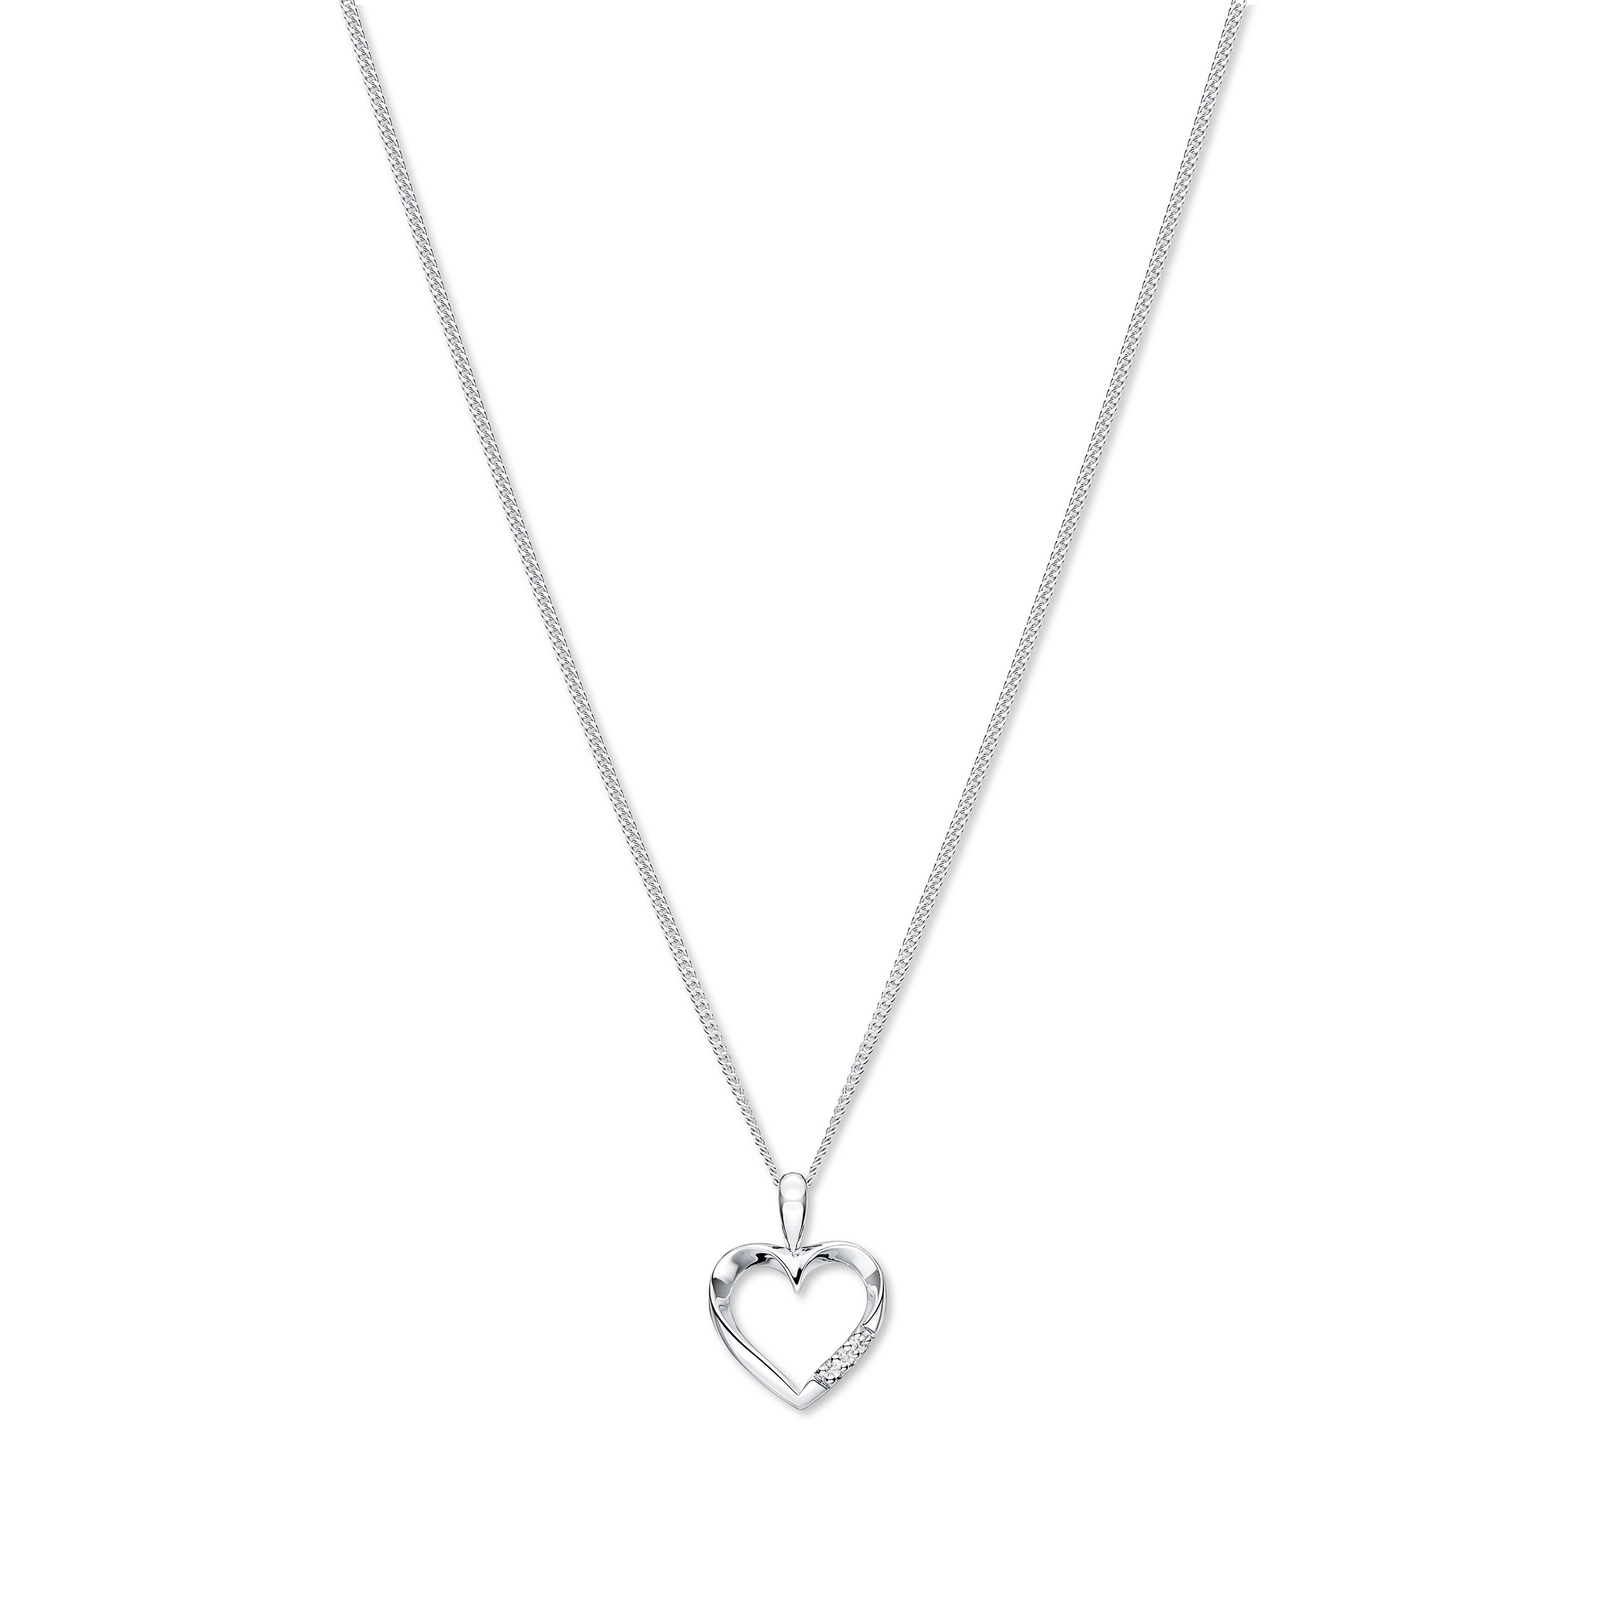 9ct white gold diamond heart pendant necklaces jewellery 9ct white gold diamond heart pendant aloadofball